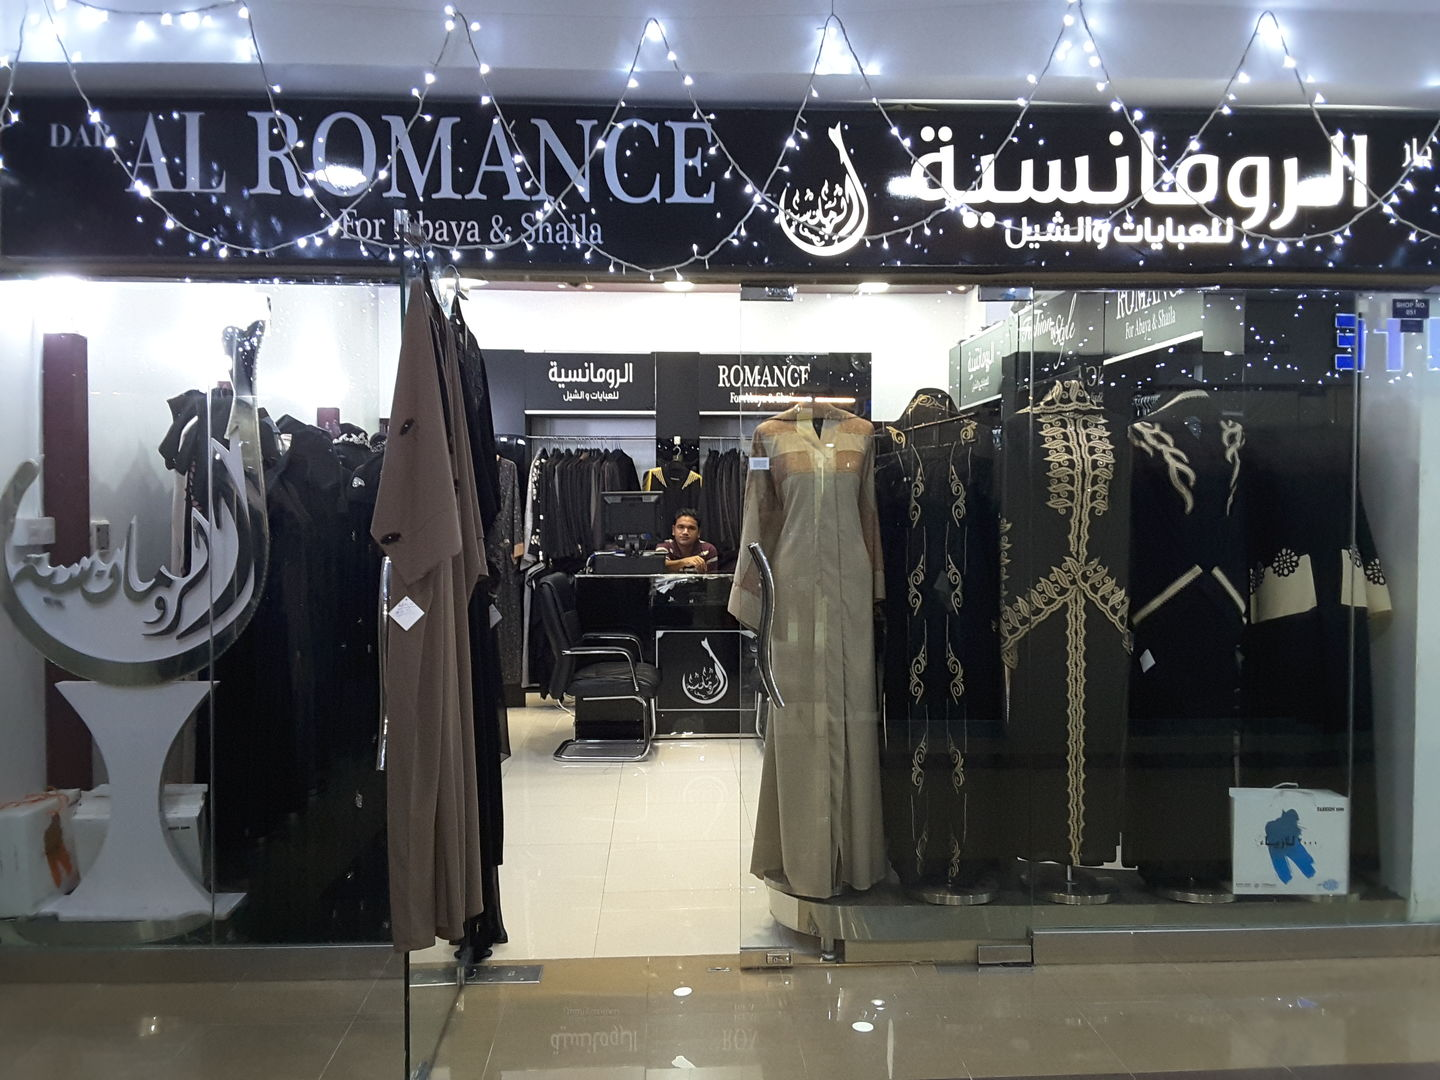 HiDubai-business-dar-al-romance-for-abaya-shaila-shopping-apparel-mirdif-dubai-2